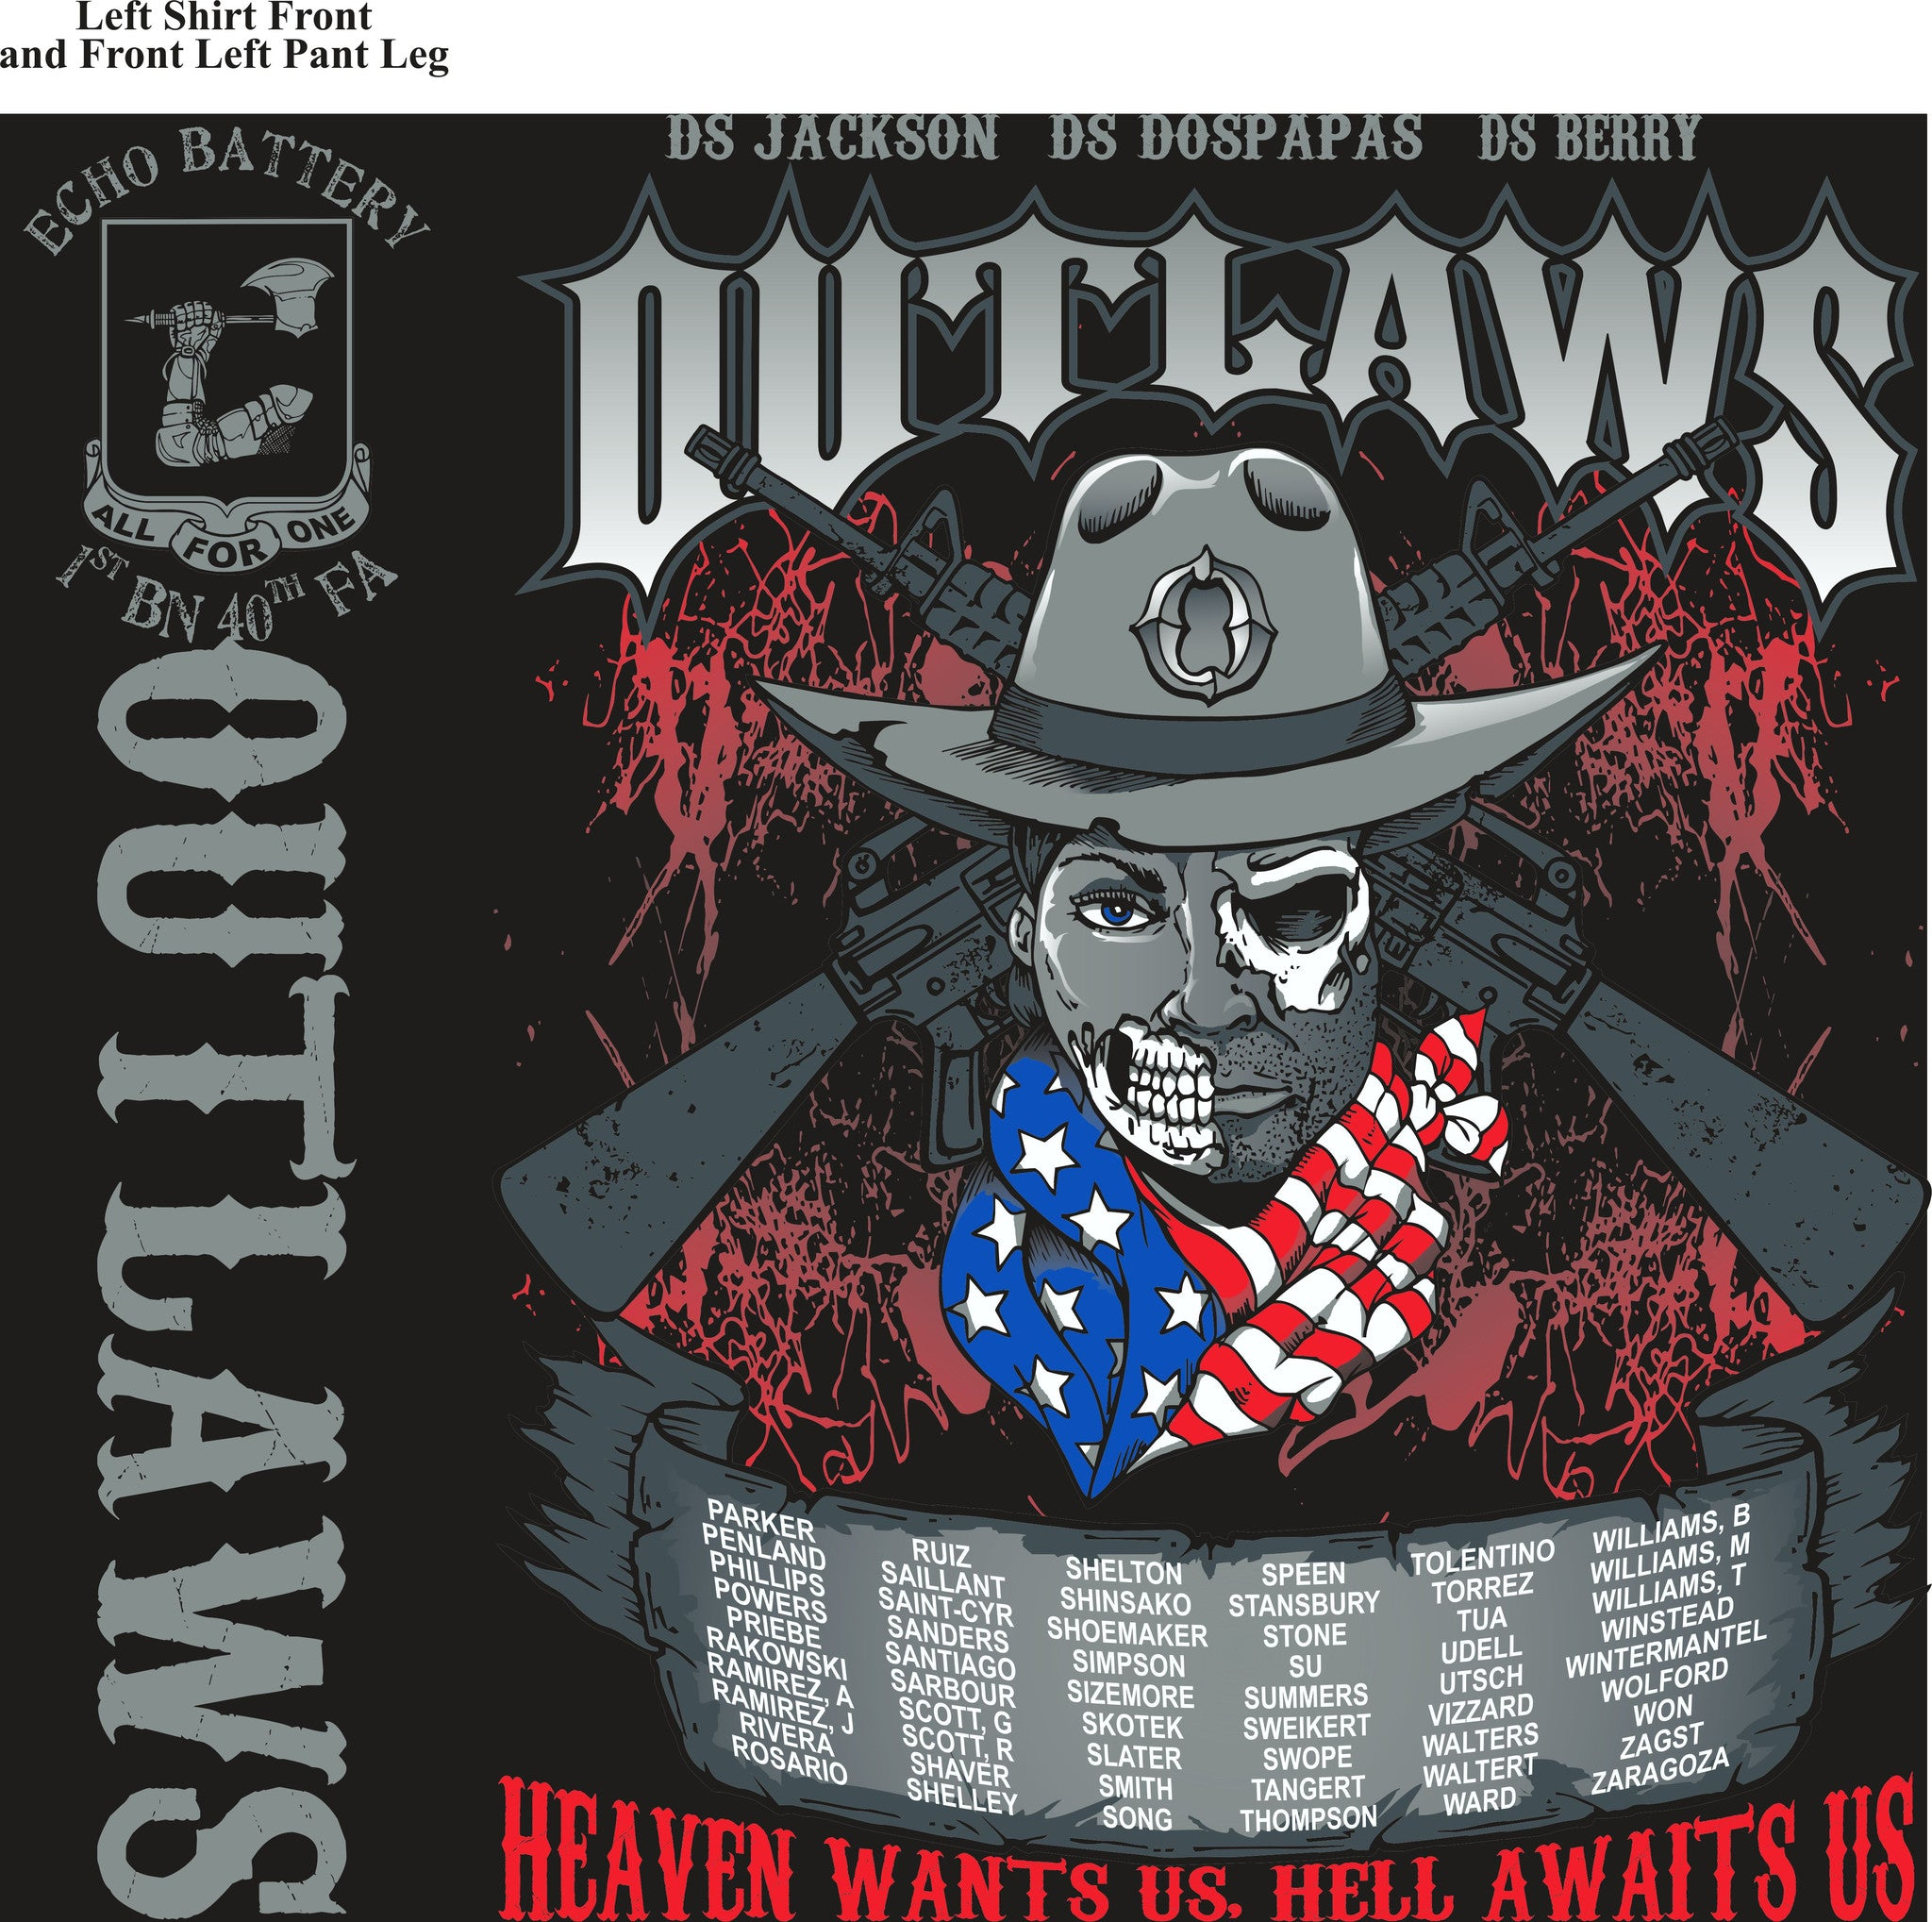 Platoon Shirts ECHO 1st 40th OUTLAWS APR 2015